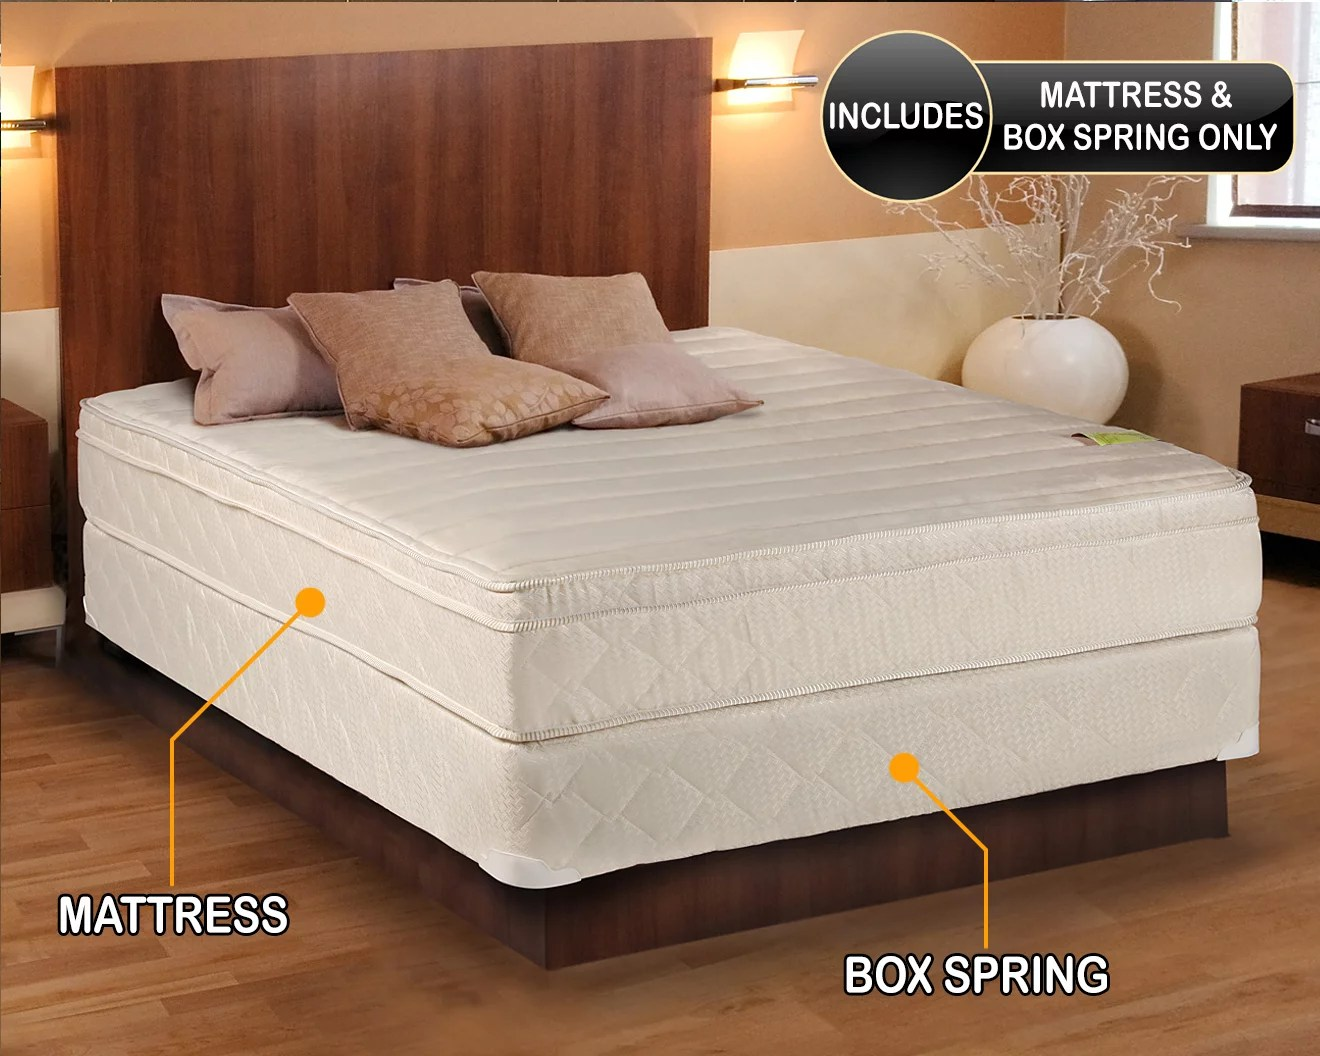 comfort pedic firm pillow top eurotop mattress box spring king 76 x80 x11 sleep system with enhance support fully assembled plush knit